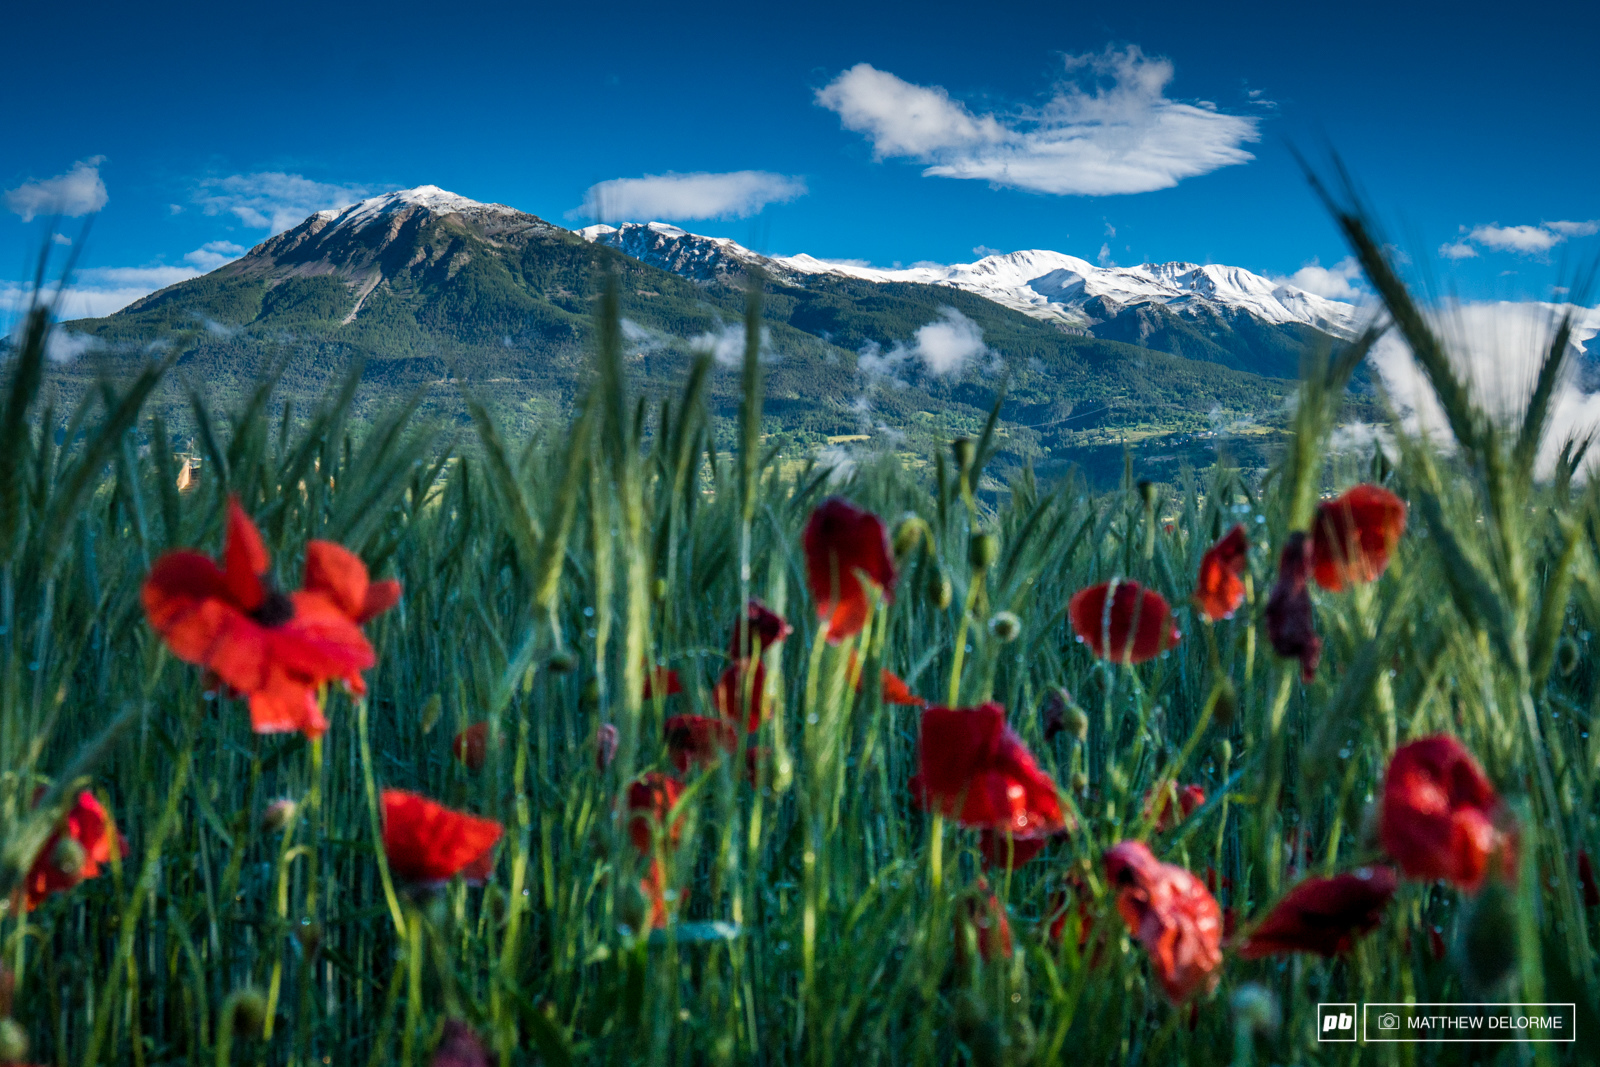 Red poppies and snow covered mountain tops. We were about to travel over 200 kilometers and will visit all four seasons. It s time to get pedaling.